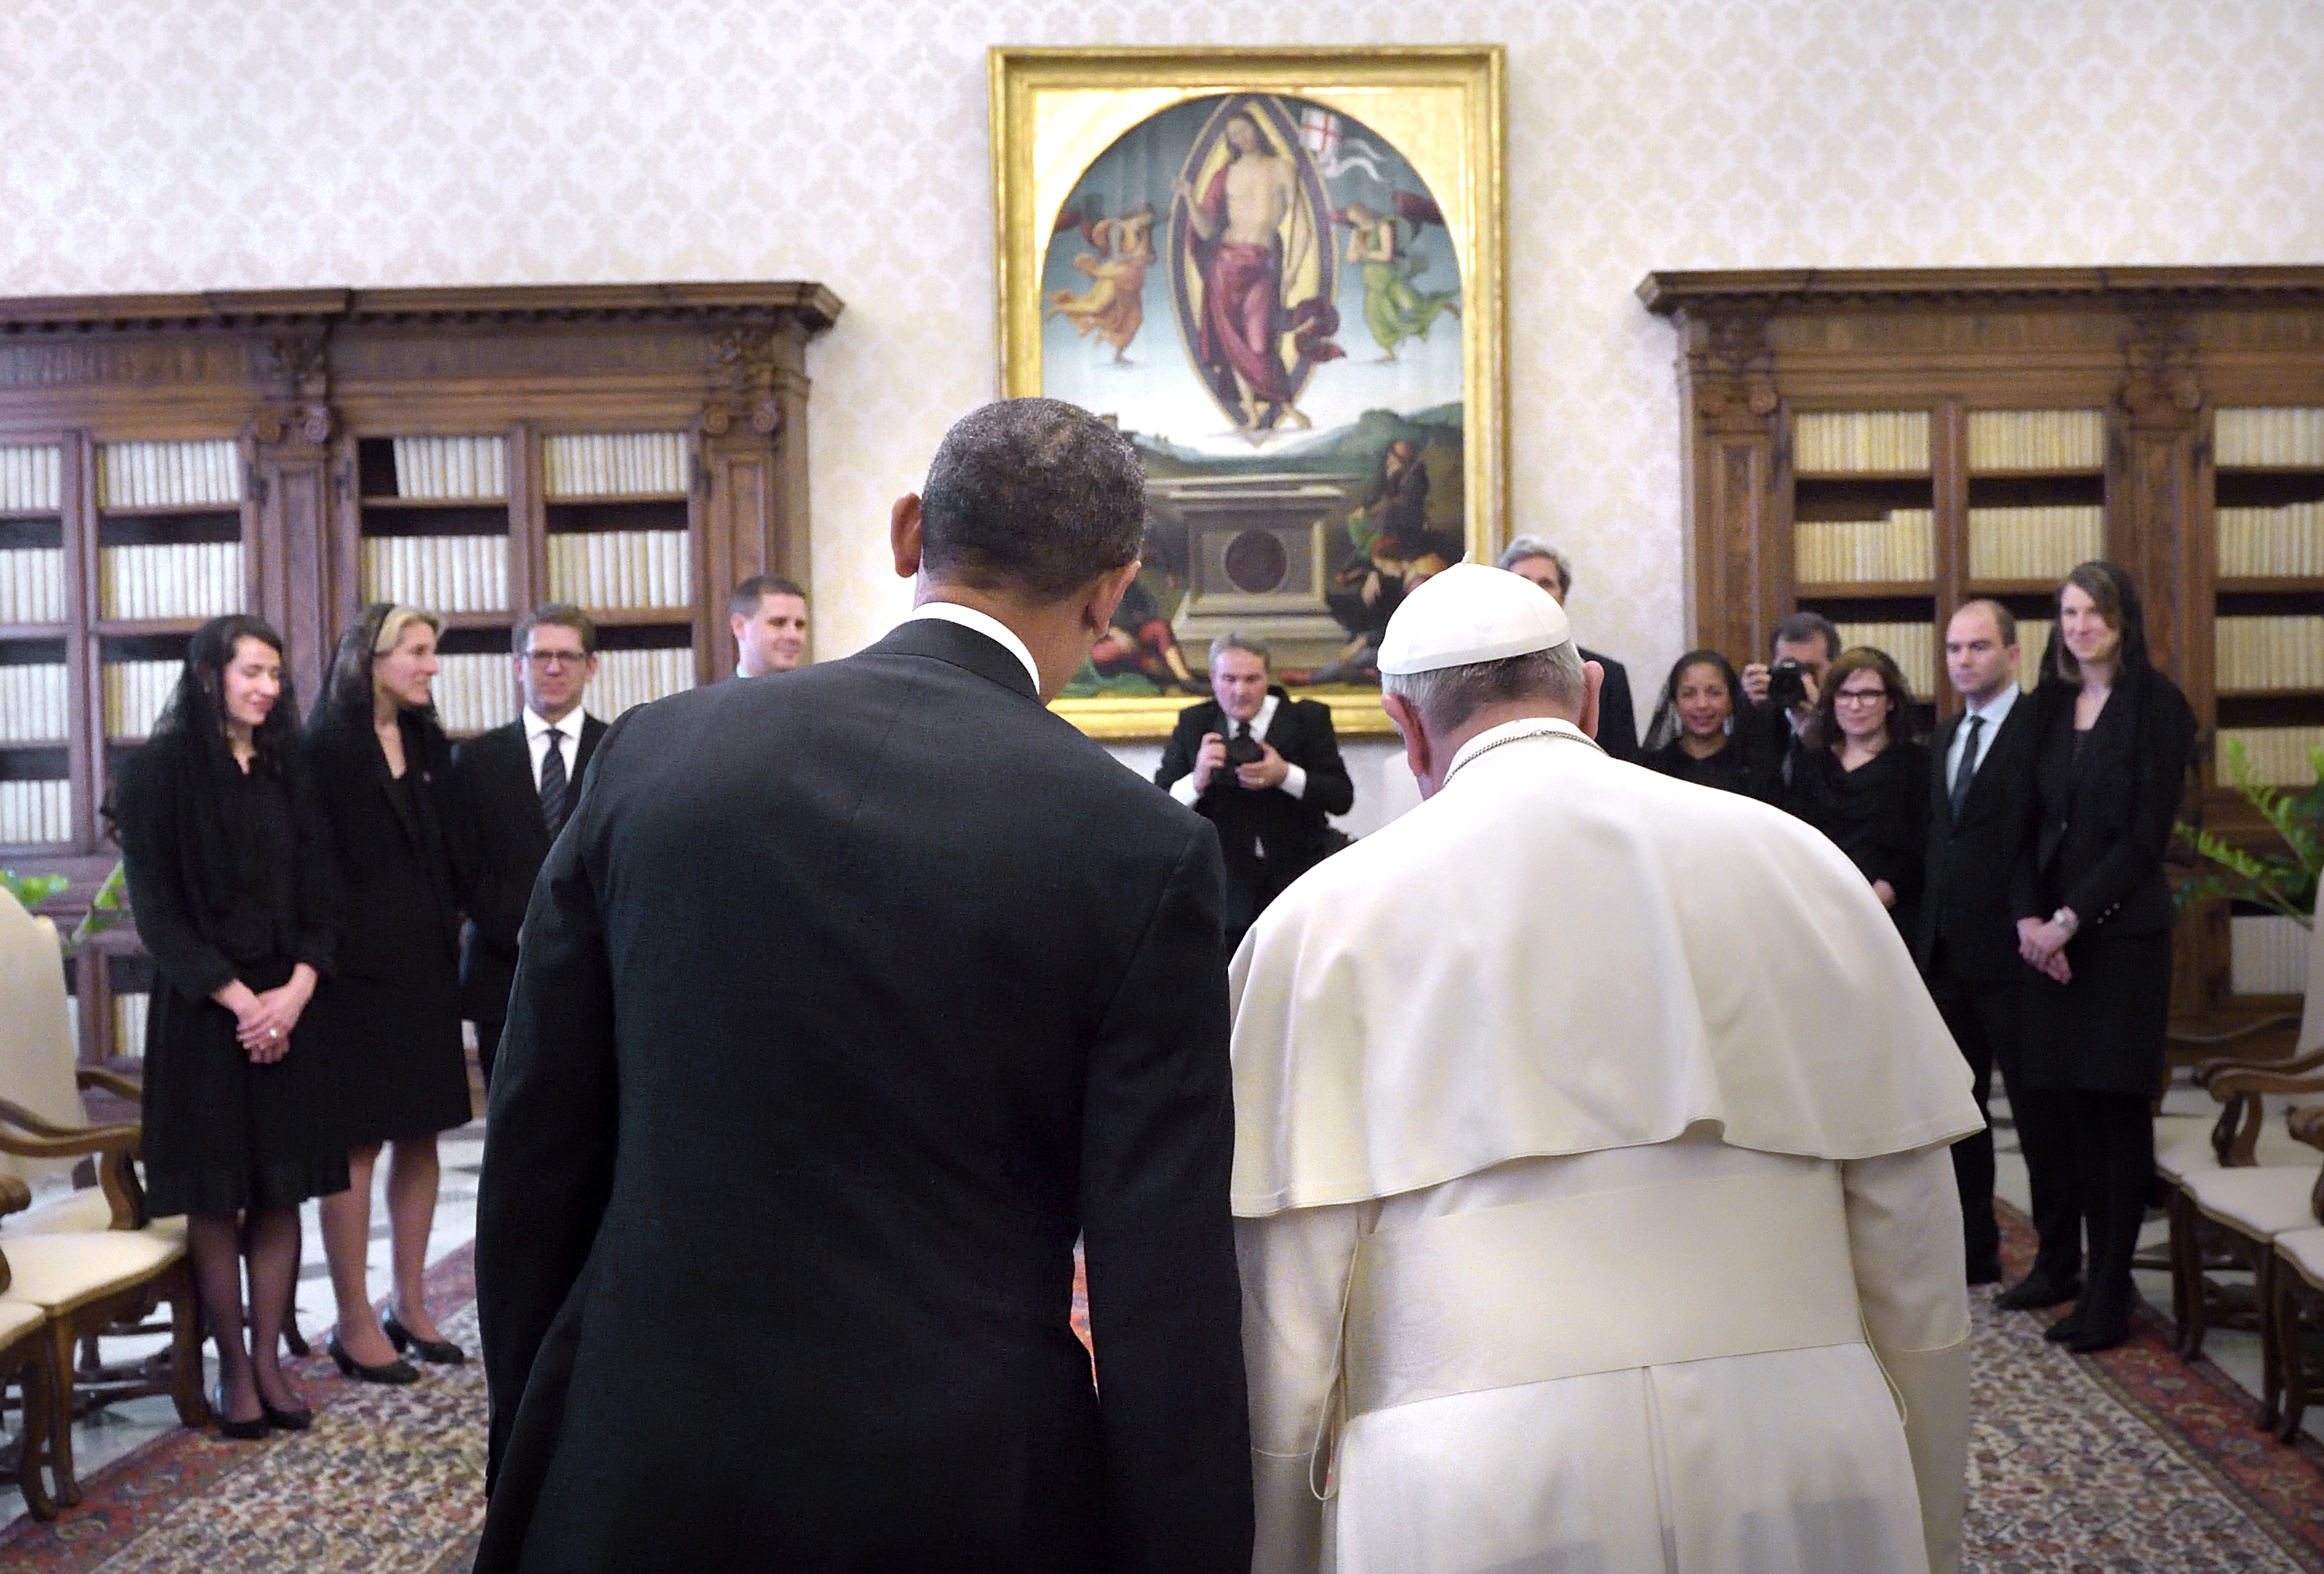 U.S. President Barack Obama speaks with Pope Francis during their meeting at the Vatican March 27, 2014.